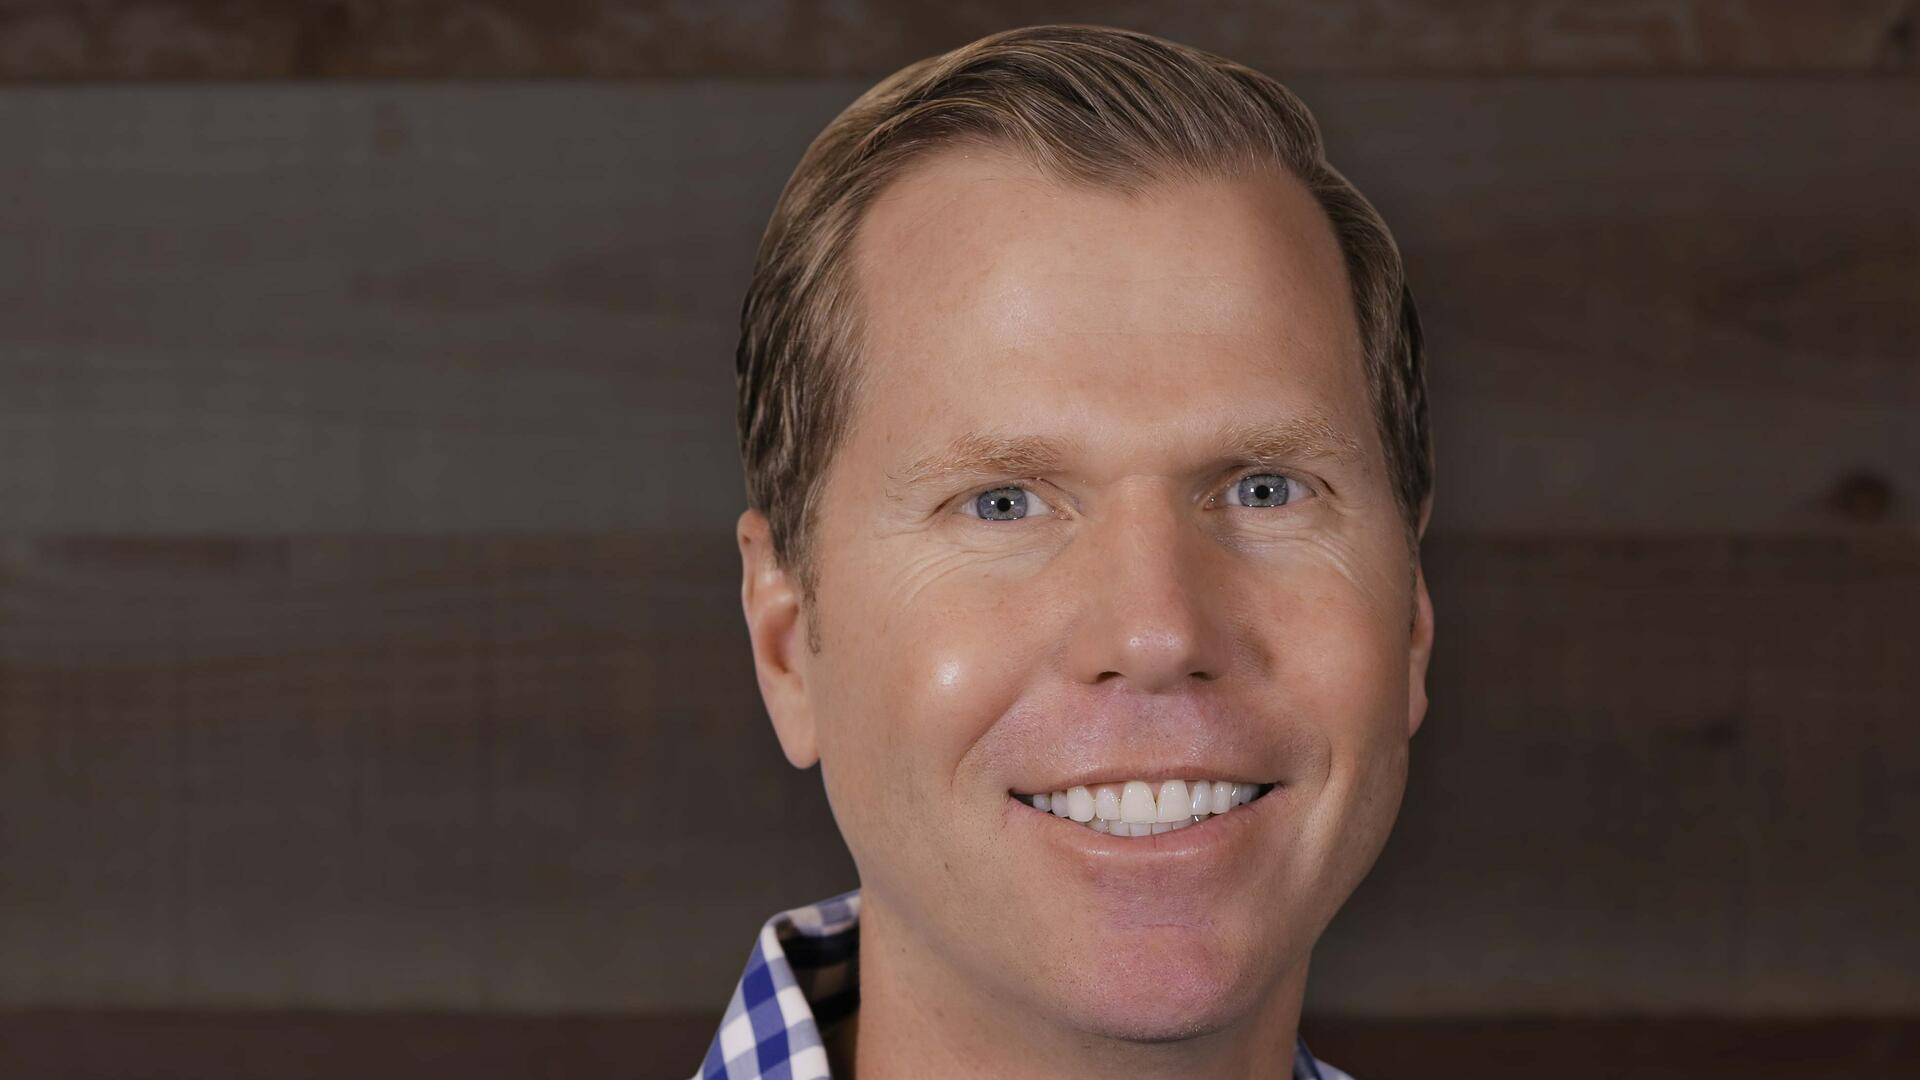 Michael Condrey, of Dead Space and Call of Duty Fame, Joins 2K to Build and Lead New Studio